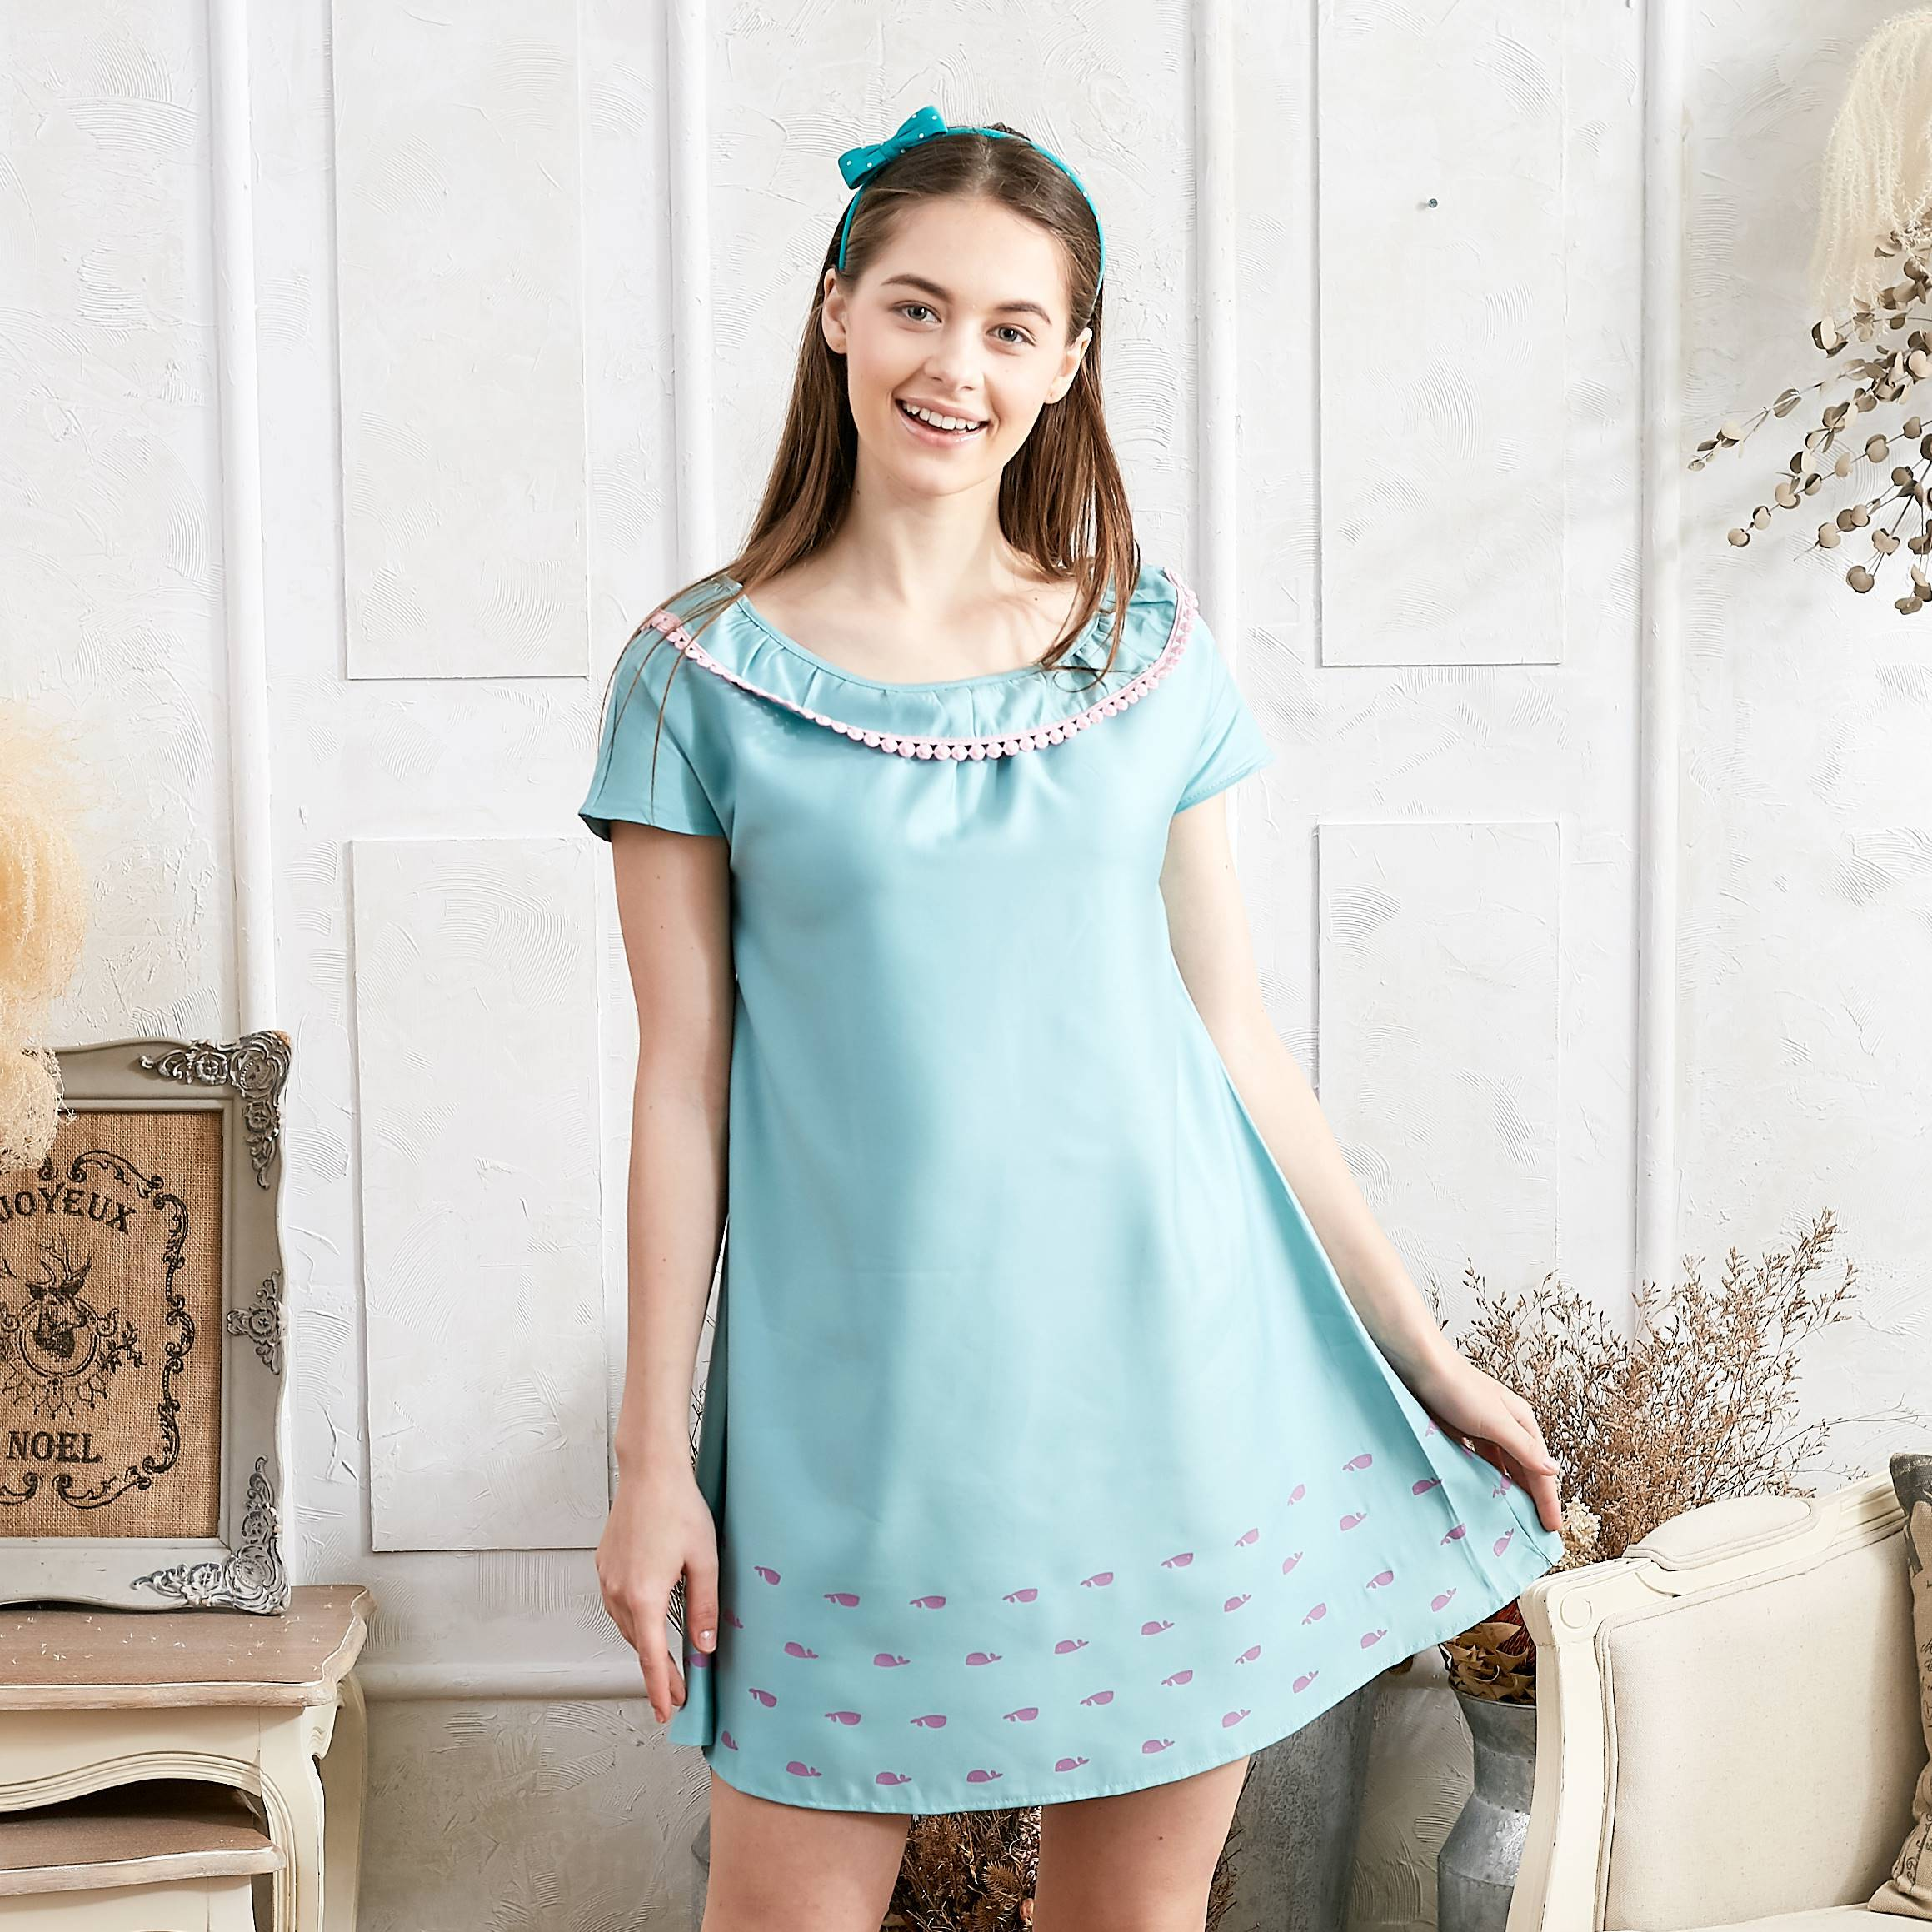 Whale printed dress with pom pom (green) - Bunny n Bloom Mommy & Me Dress